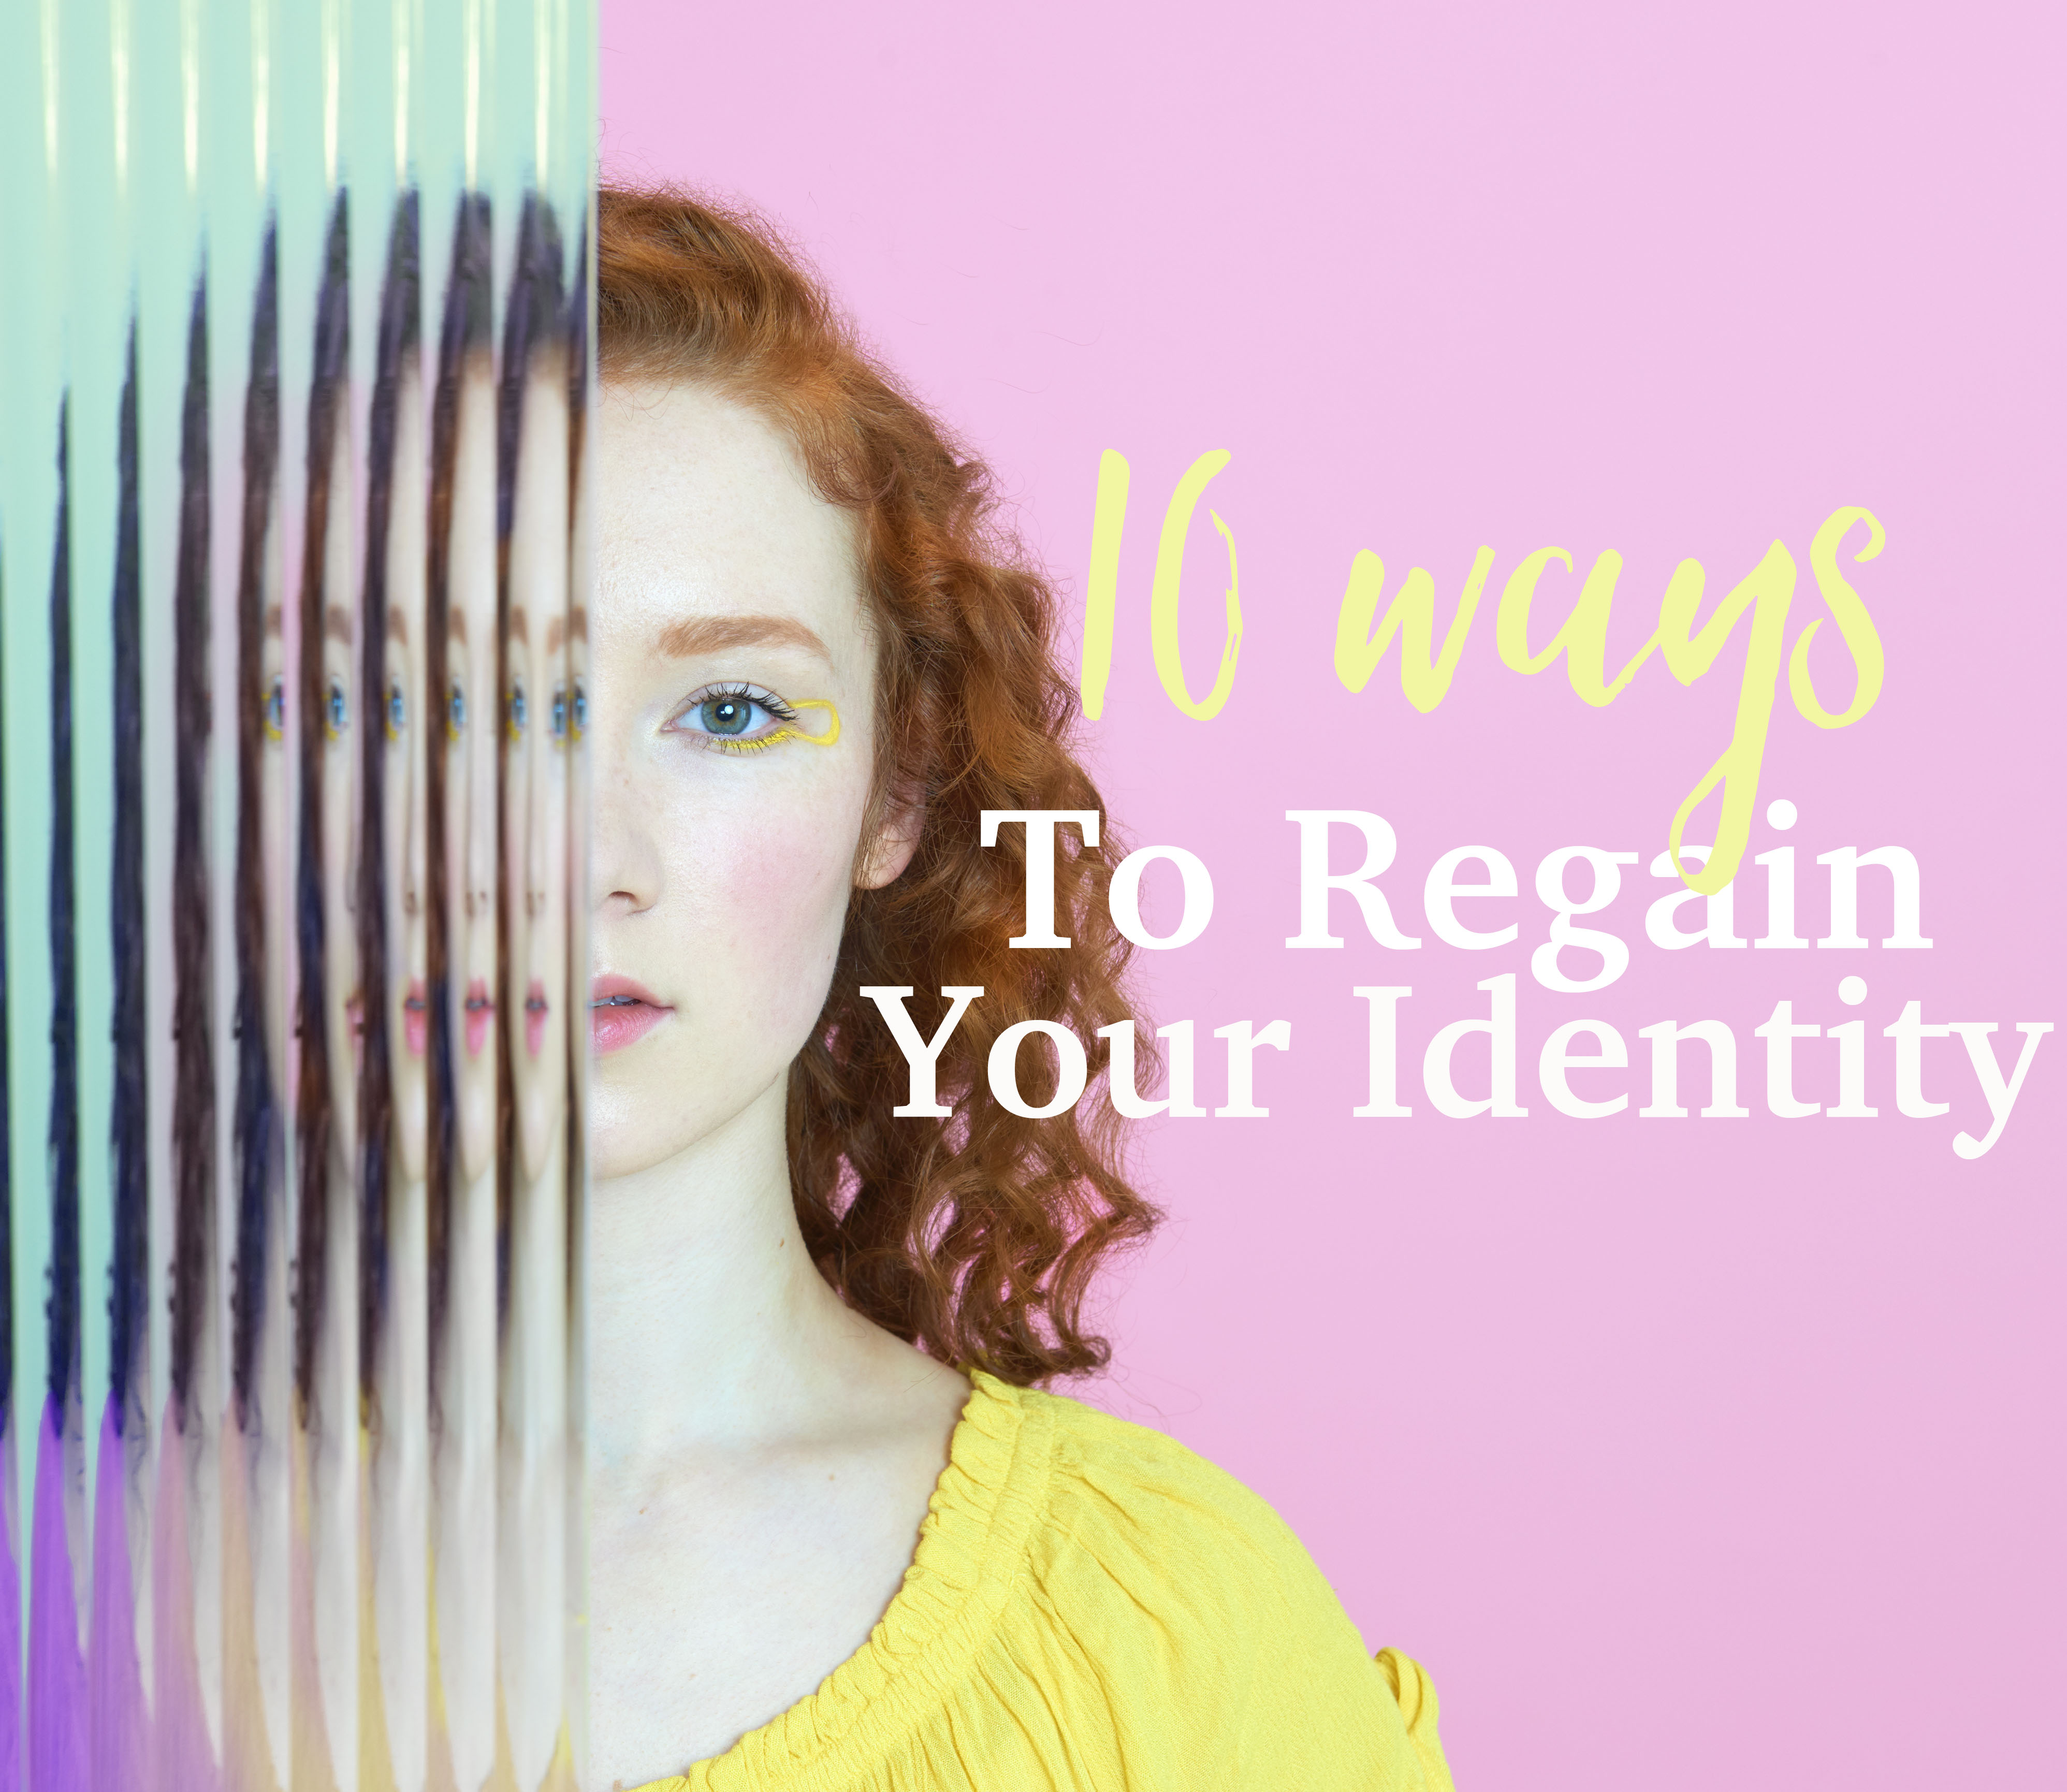 10 ways to regain your identity